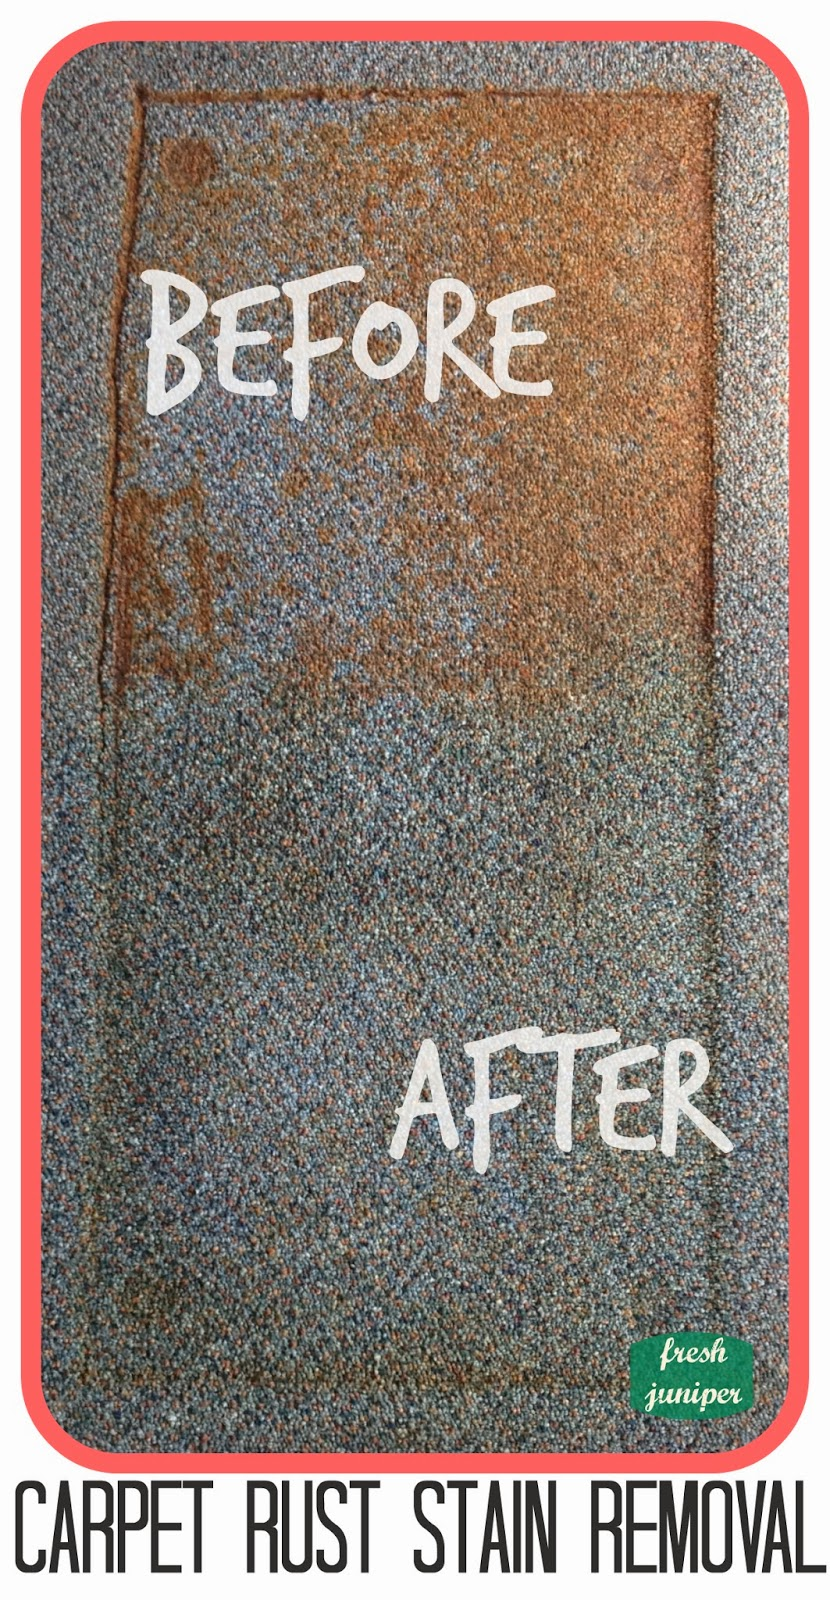 fresh juniper: Rust Stains on Carpet and Metal - Rust ...